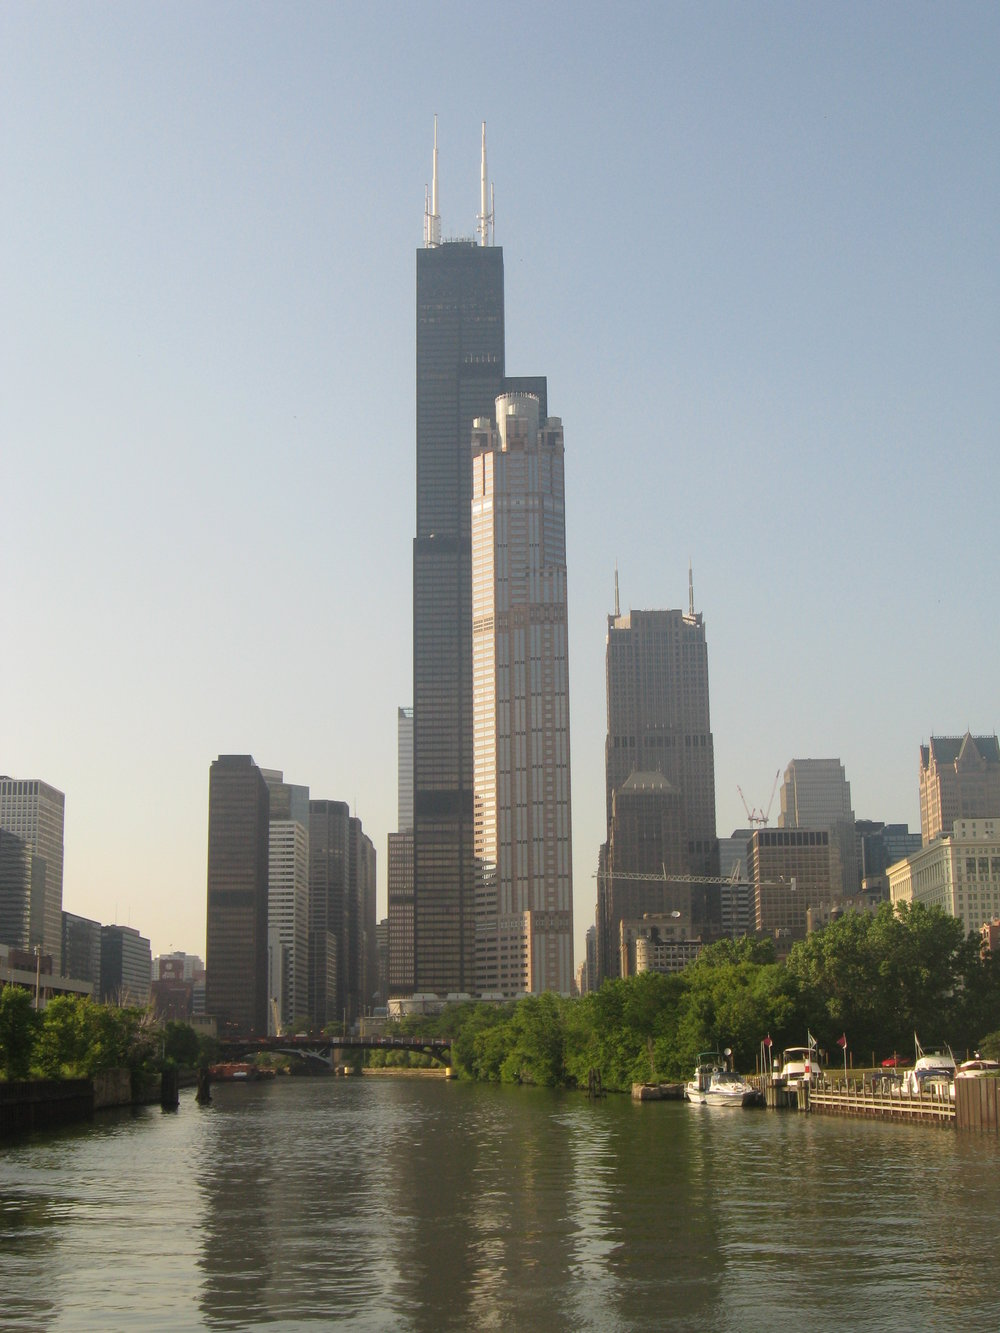 View from the Chicago River where once only tourist ferries and boats floated